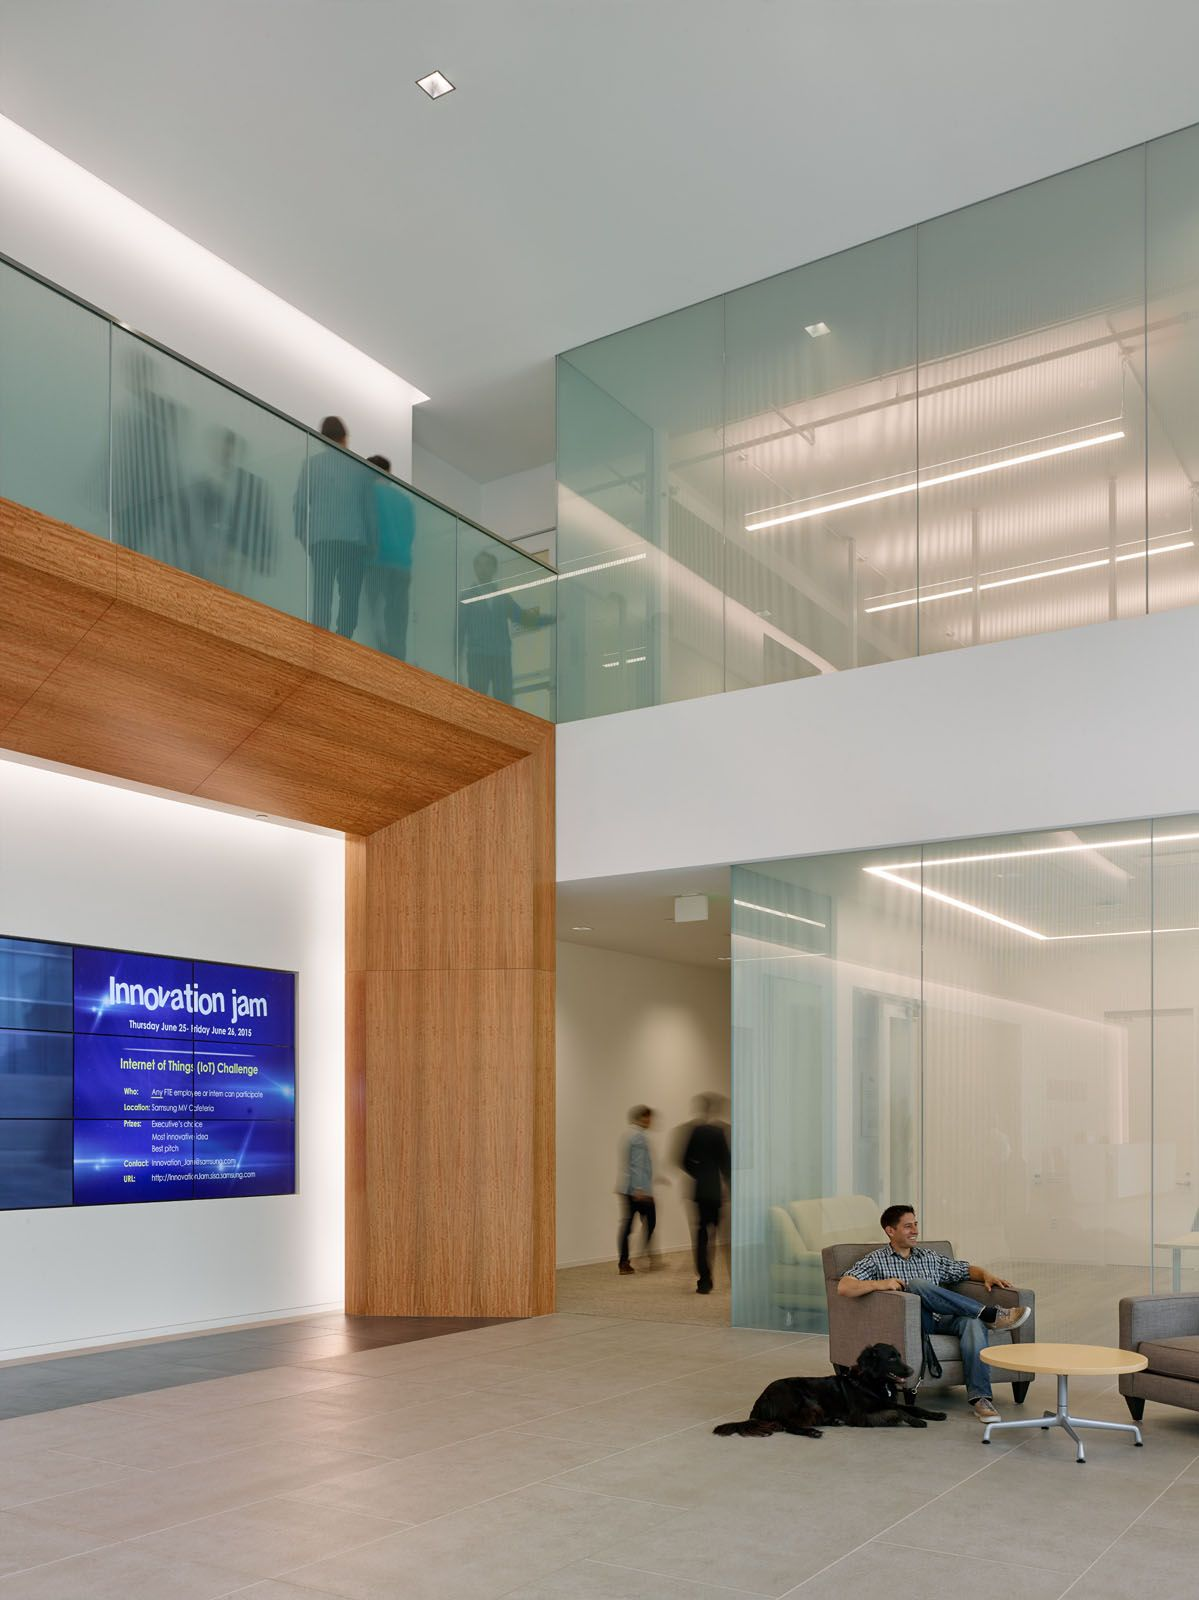 Samsung America (Interior), San Jose, CA. Architect: SOM (Photo